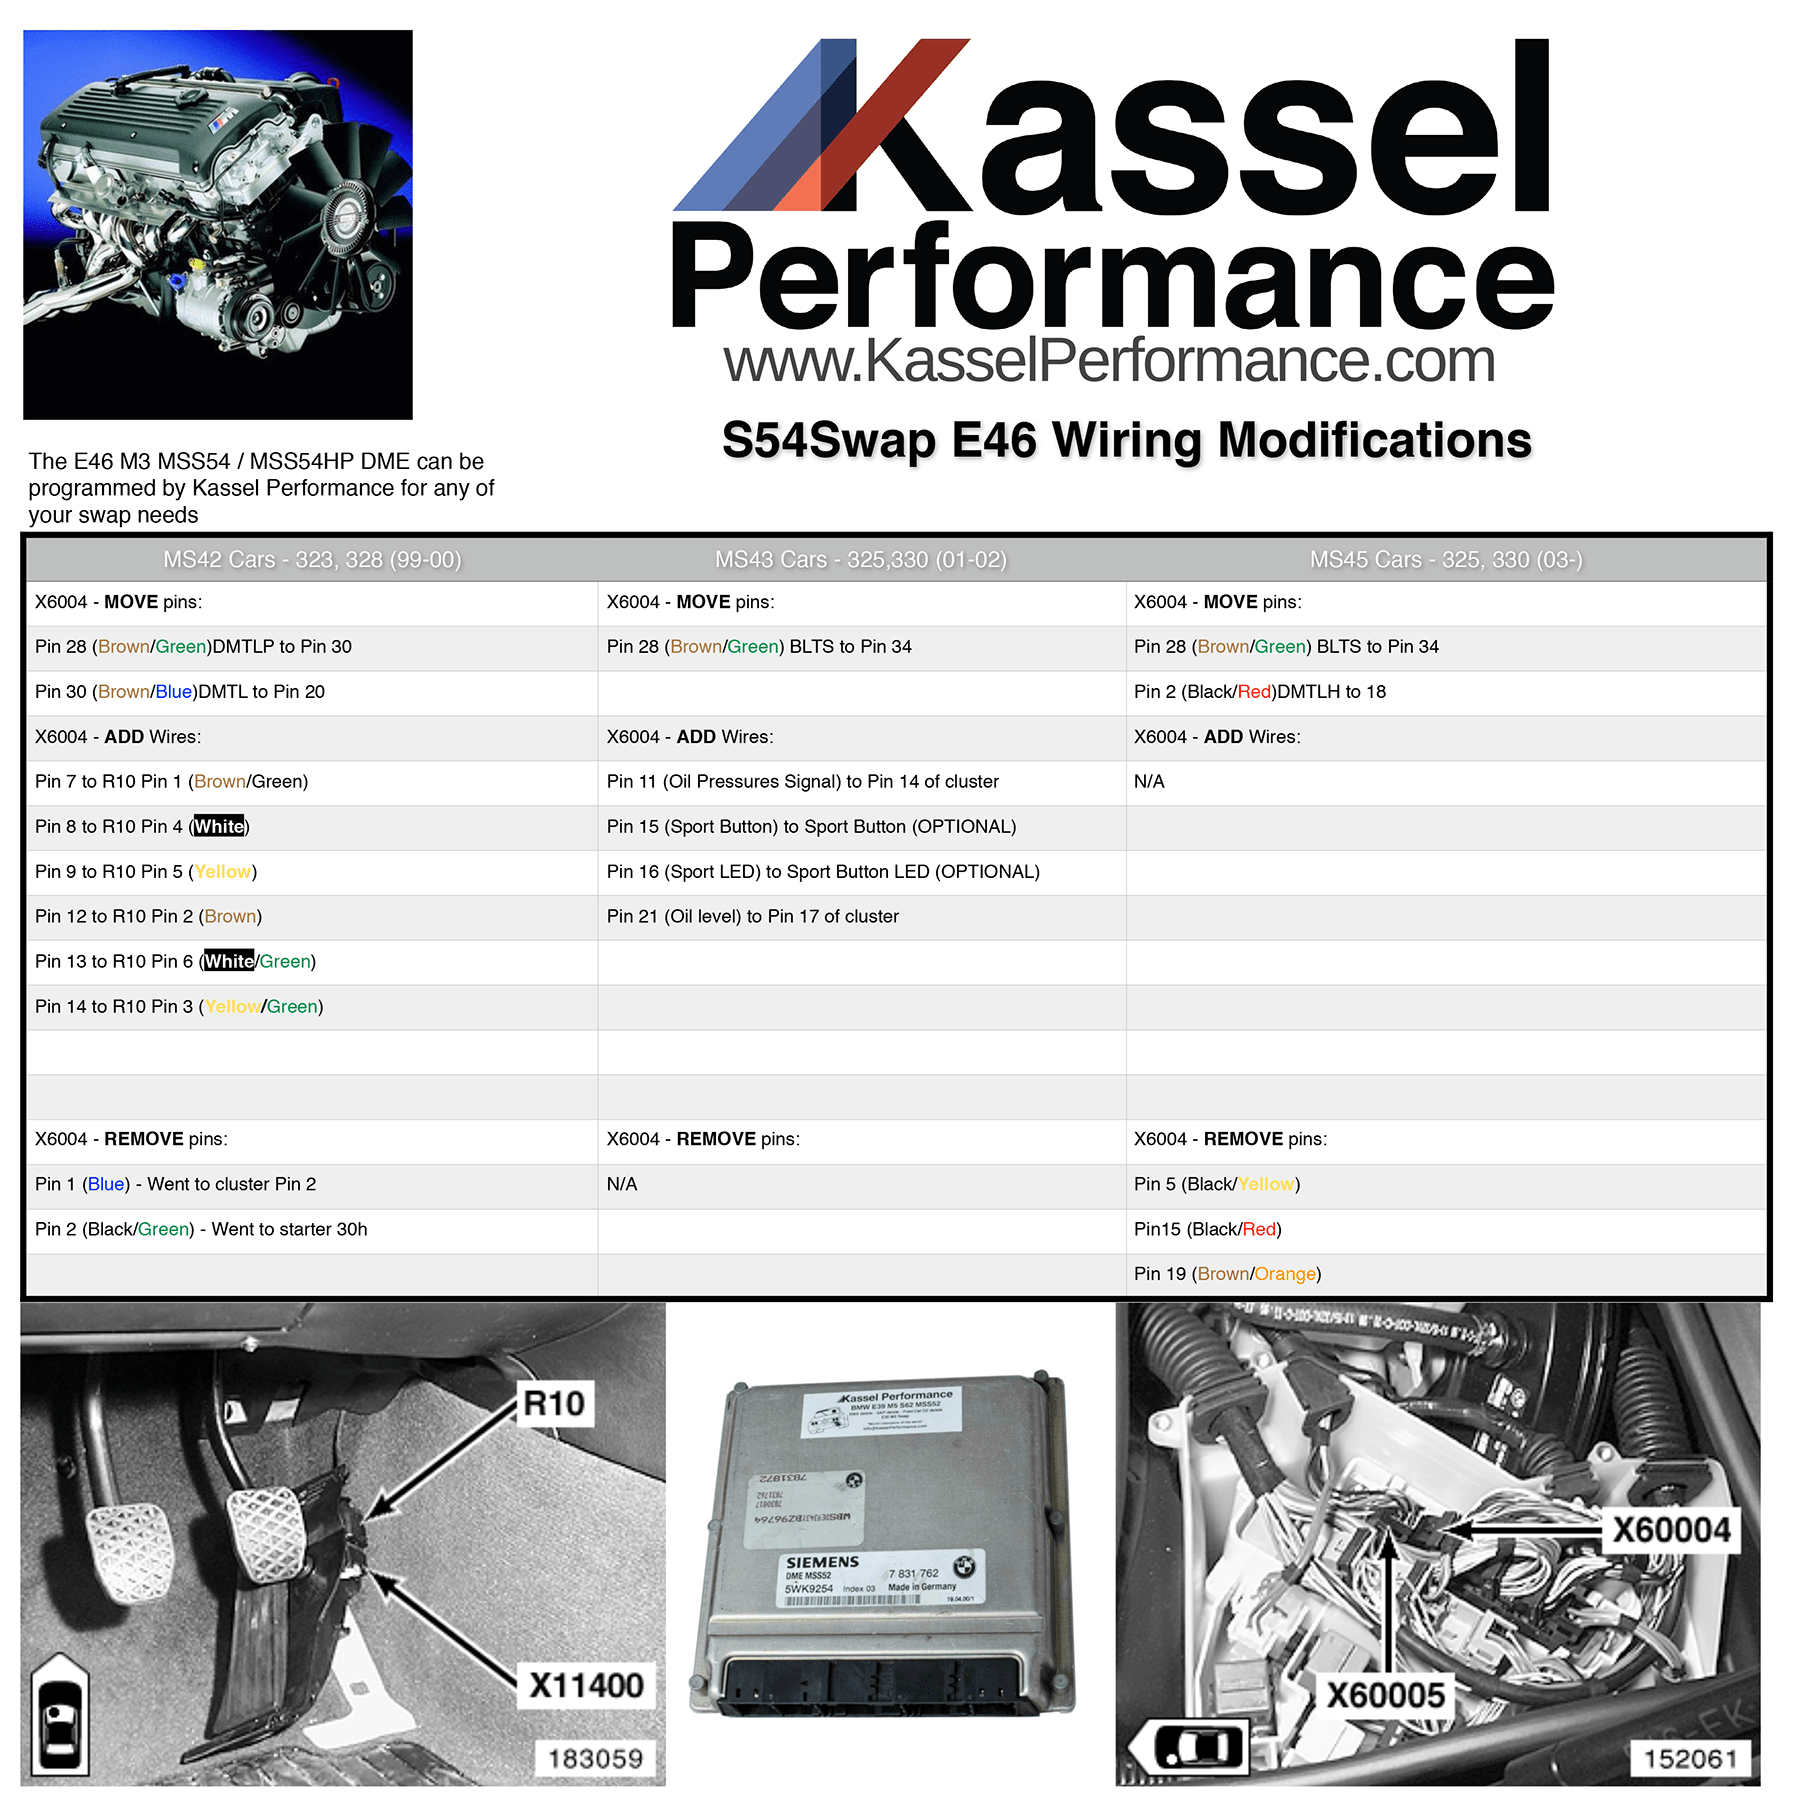 bmw e46 ecu wiring diagram 3g network architecture non m s54 modifcations kassel performance